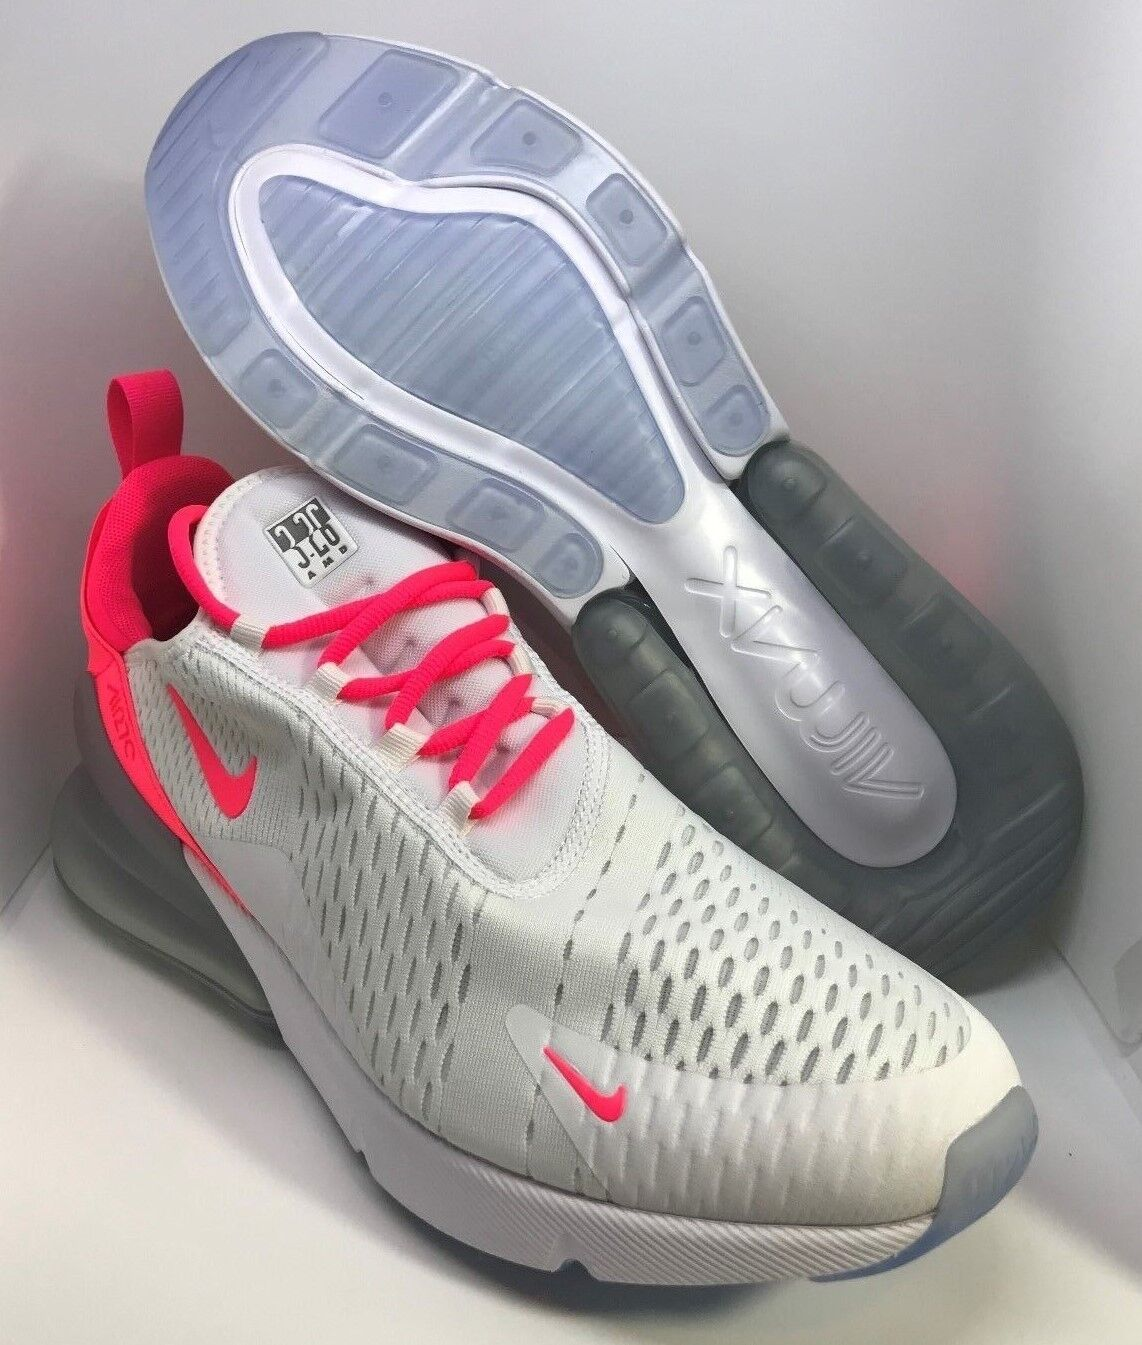 Nike iD Air Max 270  Mens Shoes Size 11